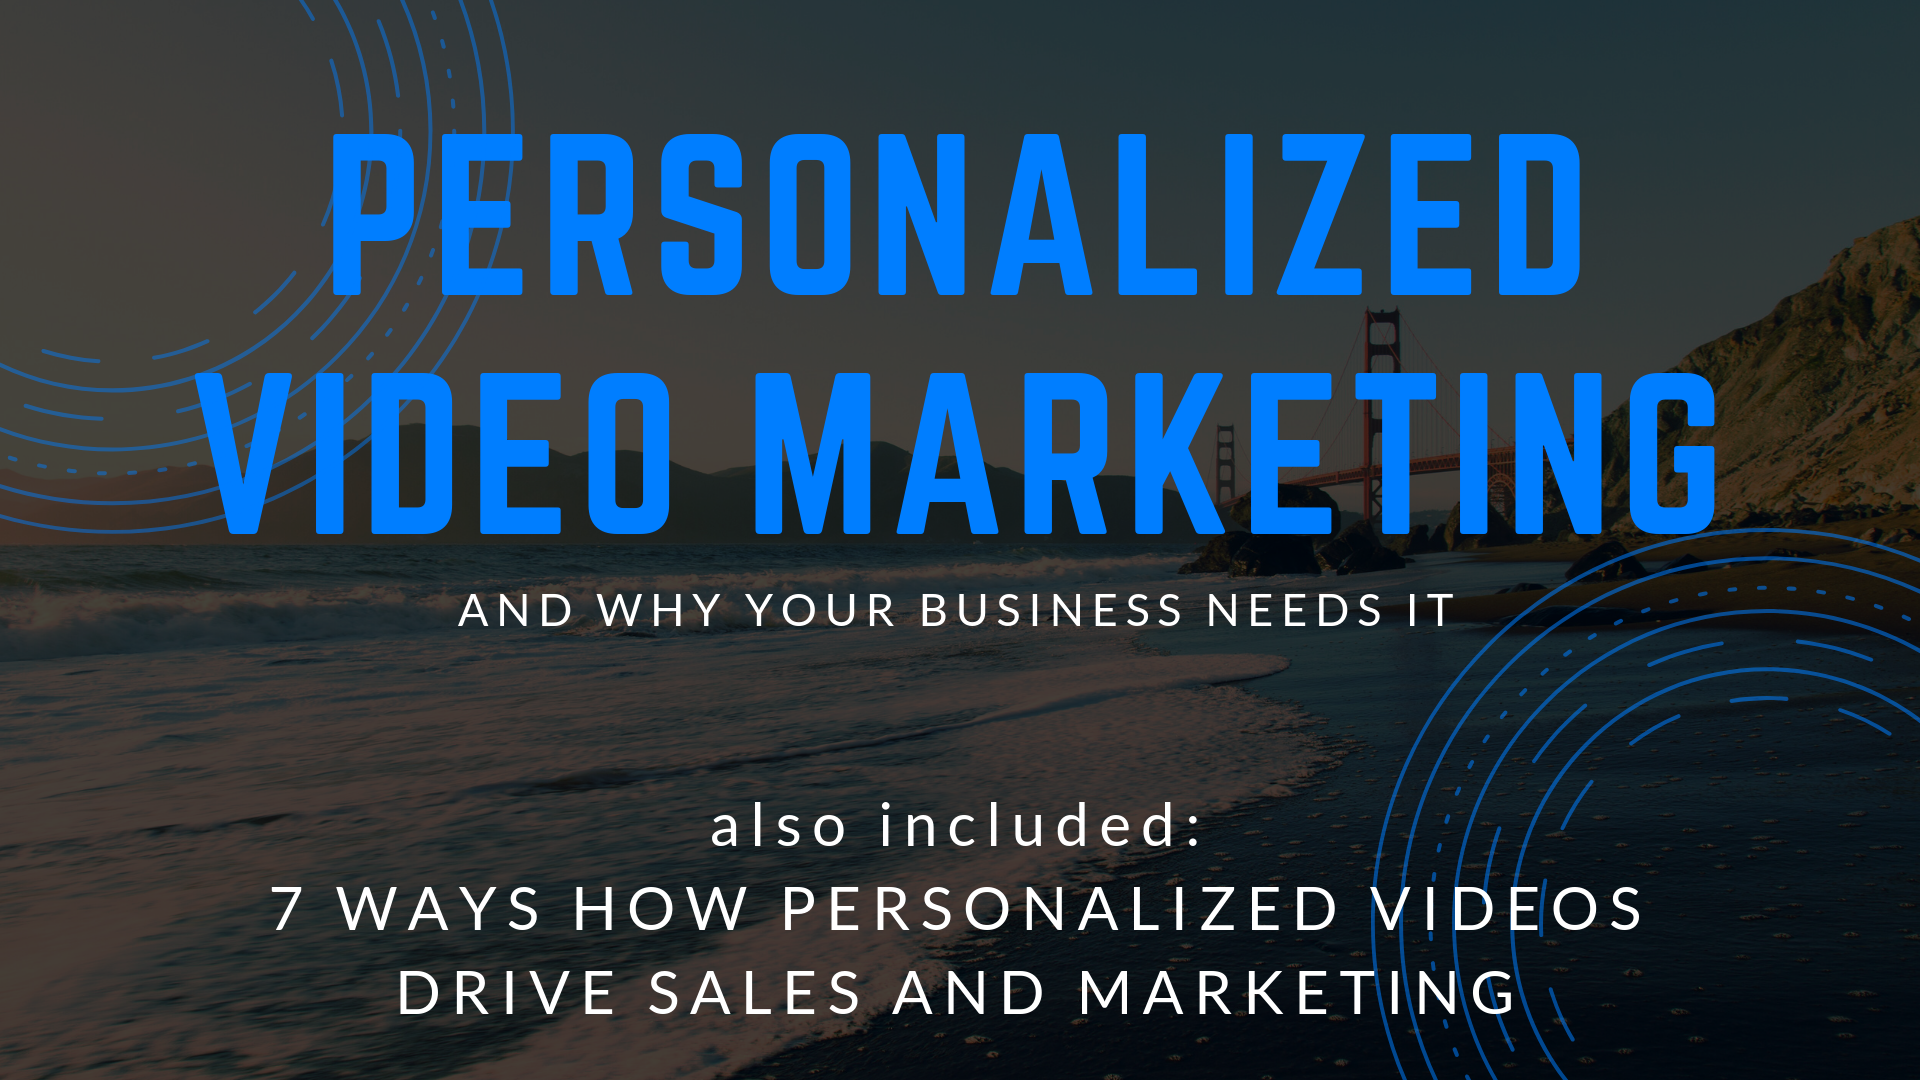 Personalized Video Marketing and why businesses need it blog banner